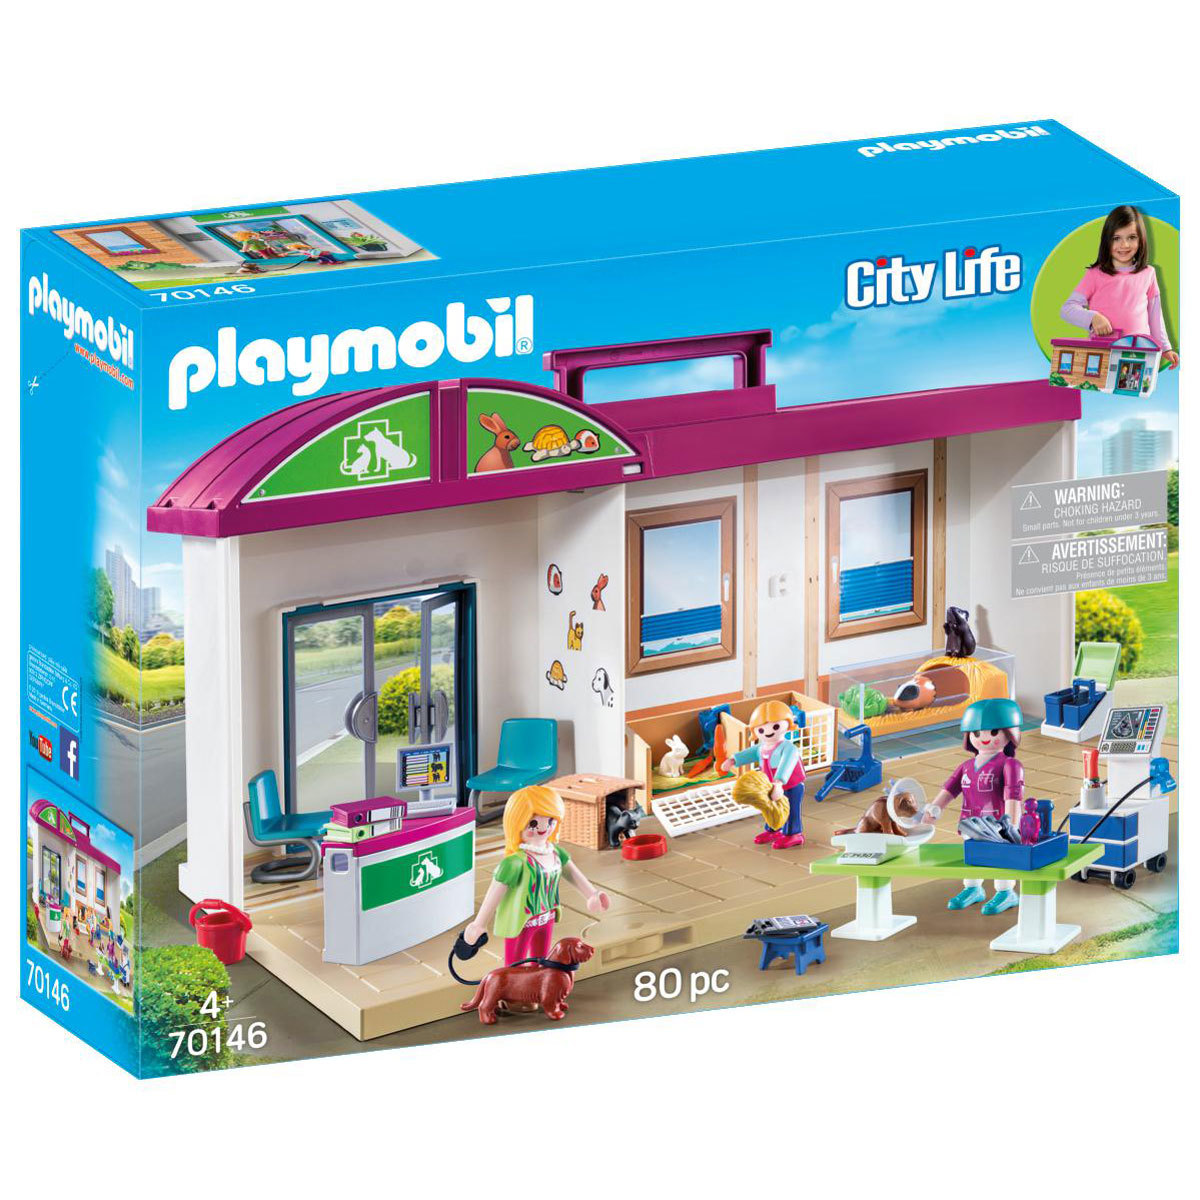 Playmobil 70146 City Life Take Along Vet Clinic from Early Learning Center